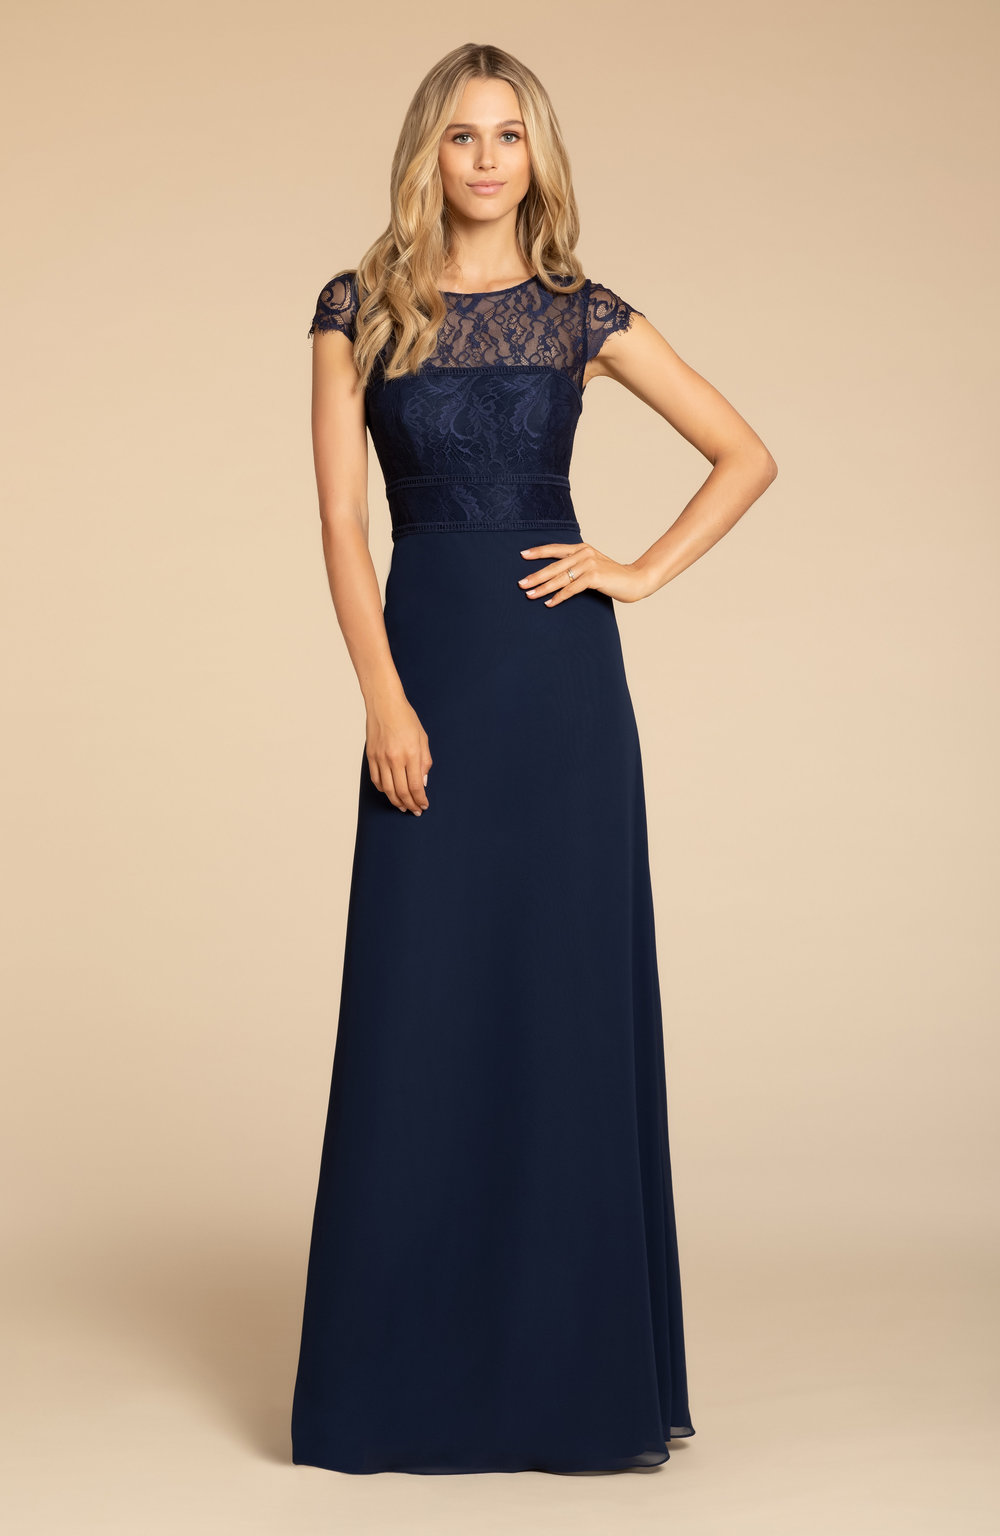 5917 -  Hayley Paige Occasions bridesmaids gown - Indigo chiffon A-line gown, Navy lace bodice with ladder trim detail, cap sleeve, natural waist    Available in 22 colors